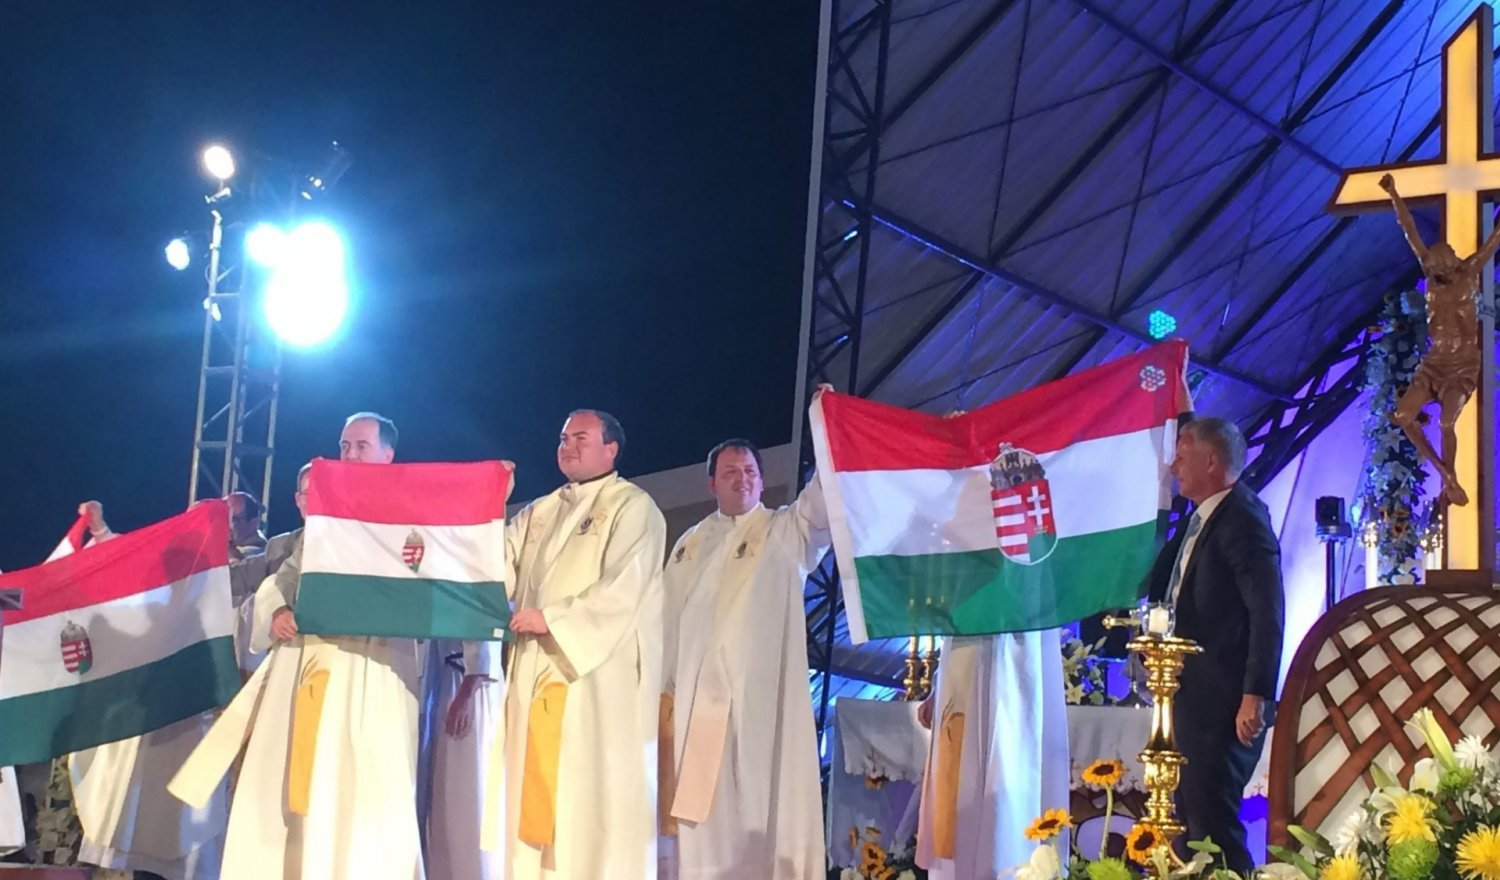 hungary-to-host-international-eucharistic-congress-in-2020-3.jpg